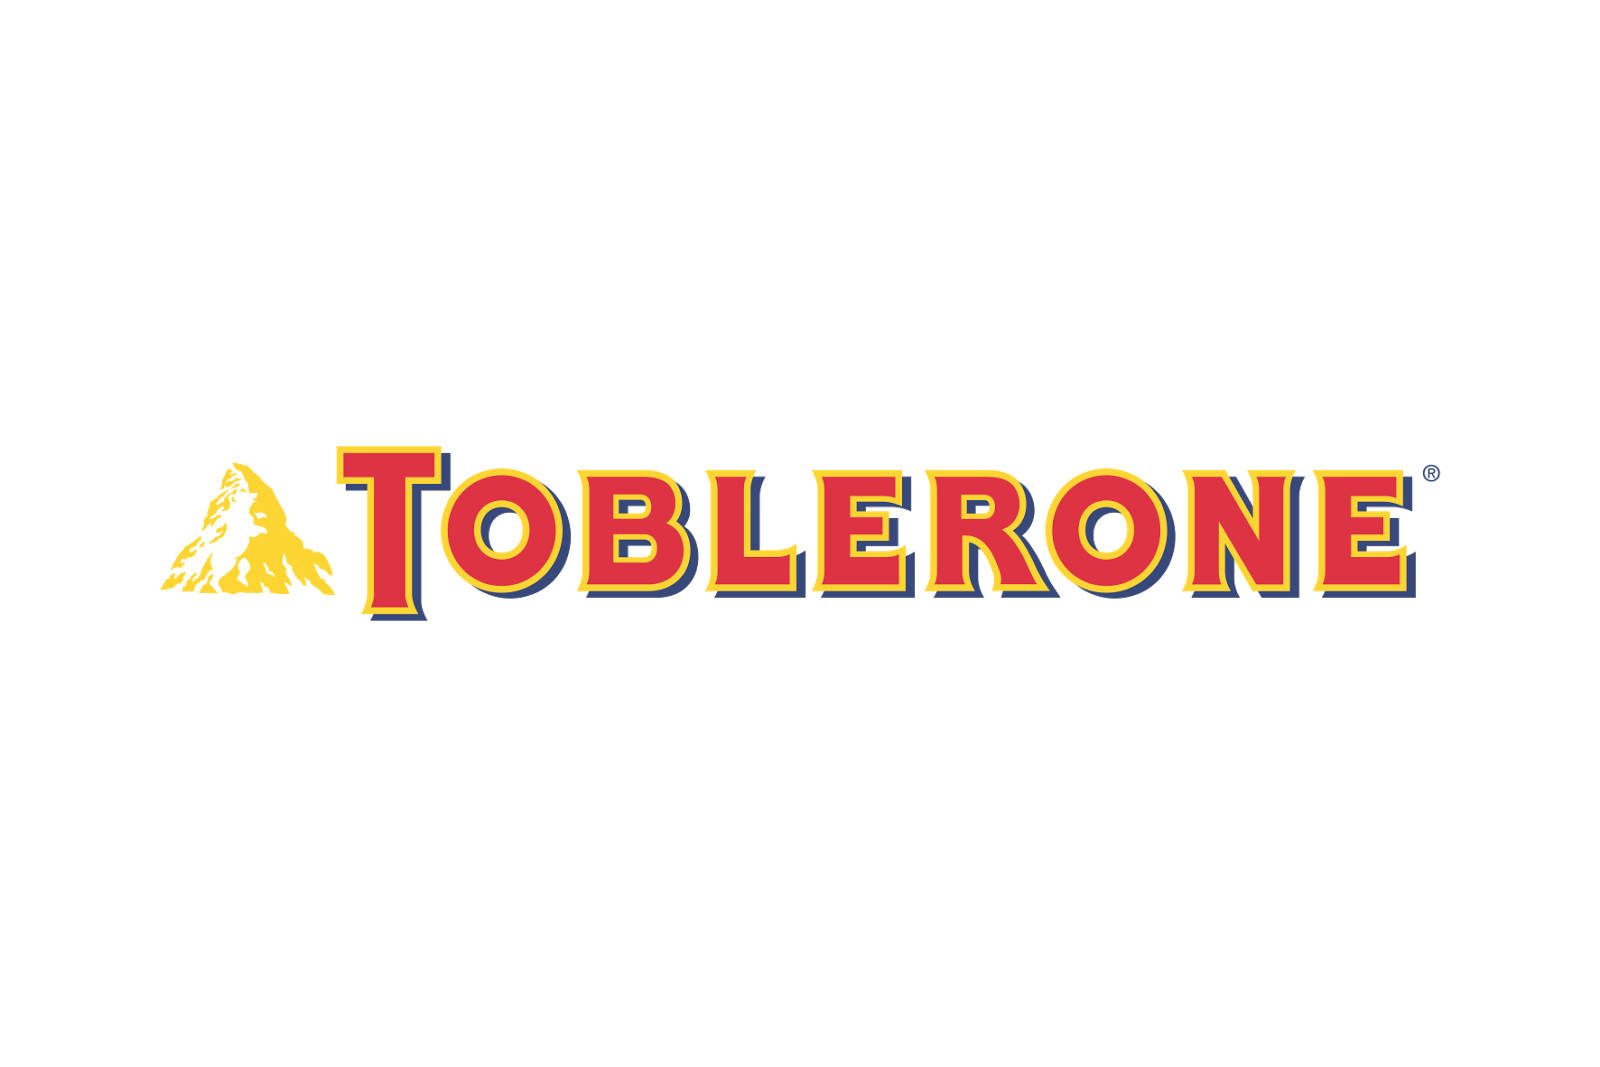 Toblerone Logo Wallpaper